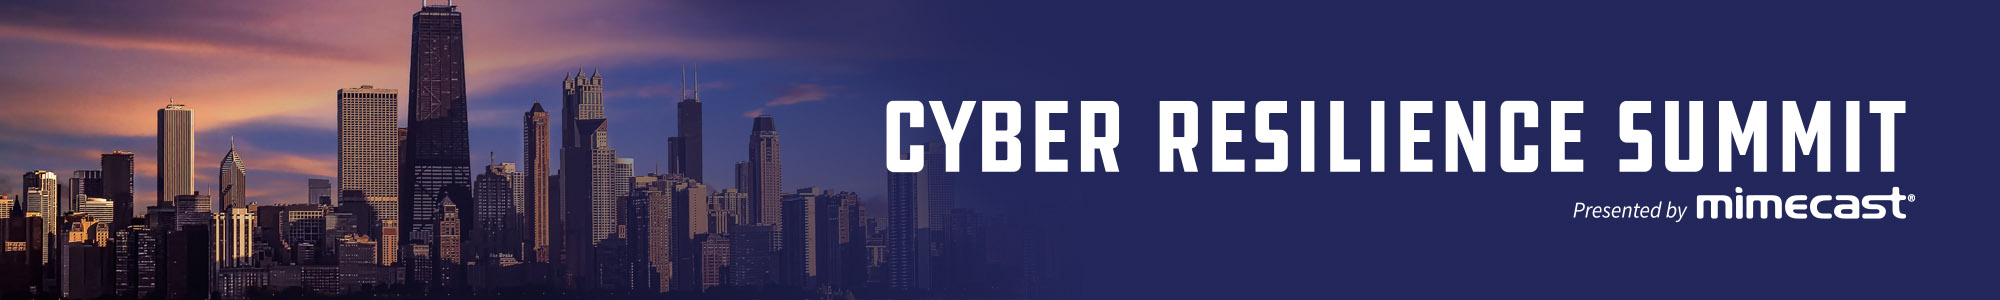 Cyber Resilience Summit 2020 presented by Mimecast